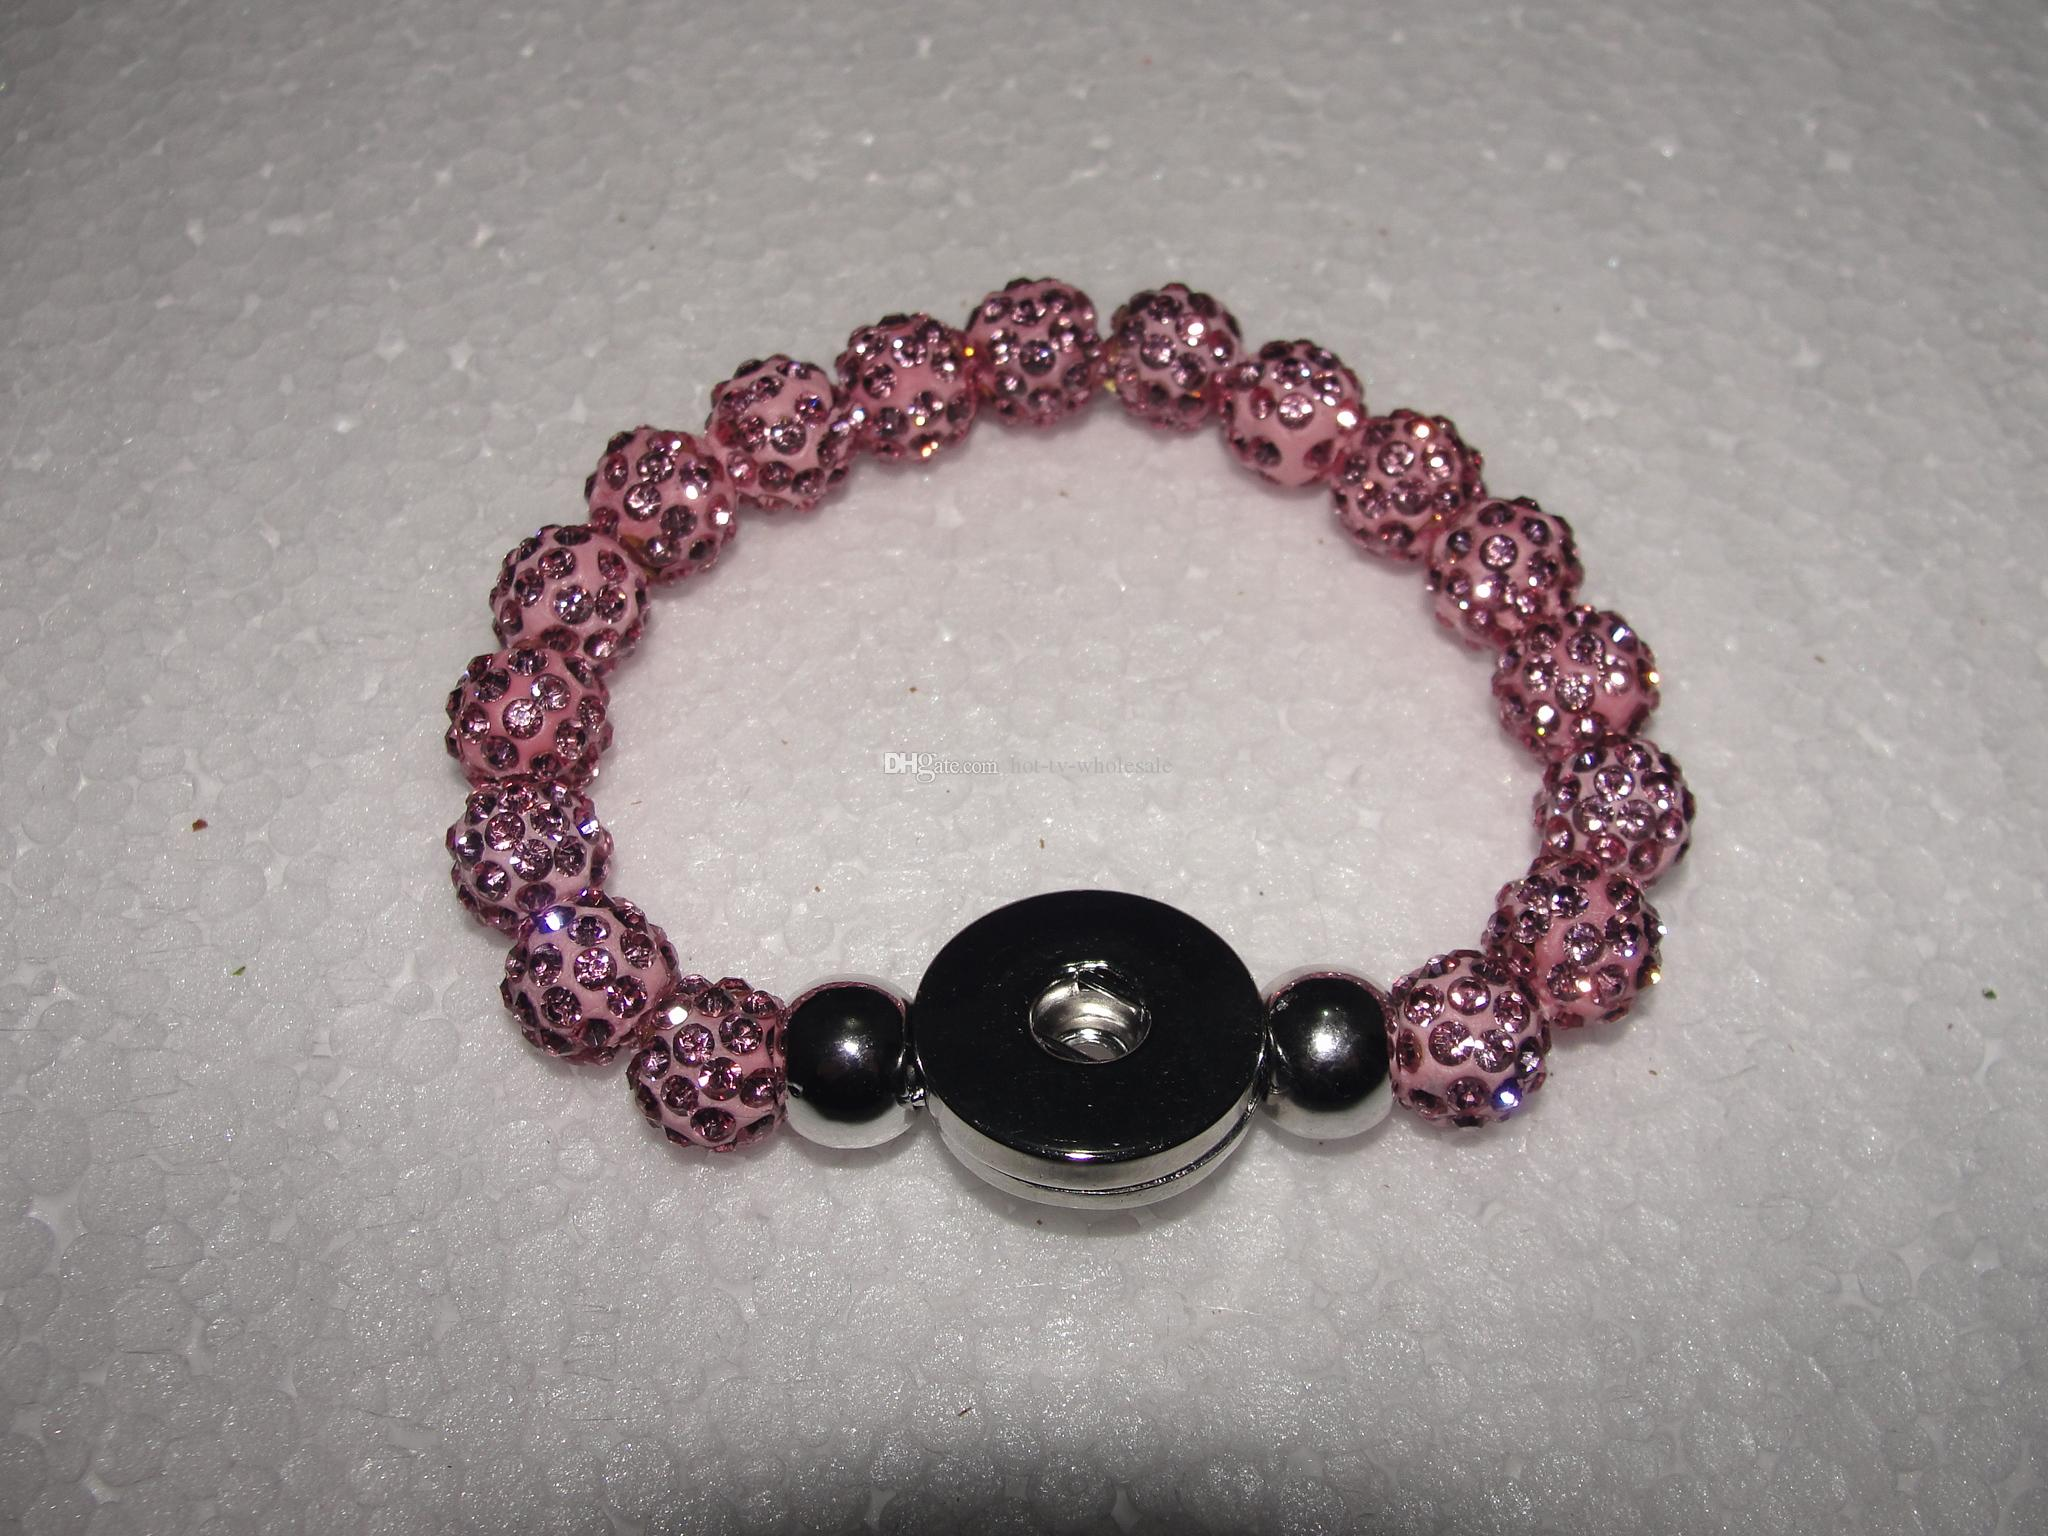 10mm*17 beads Crystal Shambala NOOSA Custom Snap Button Charm Bracelet stretch Interchangeable 18mm Charm Bracelet